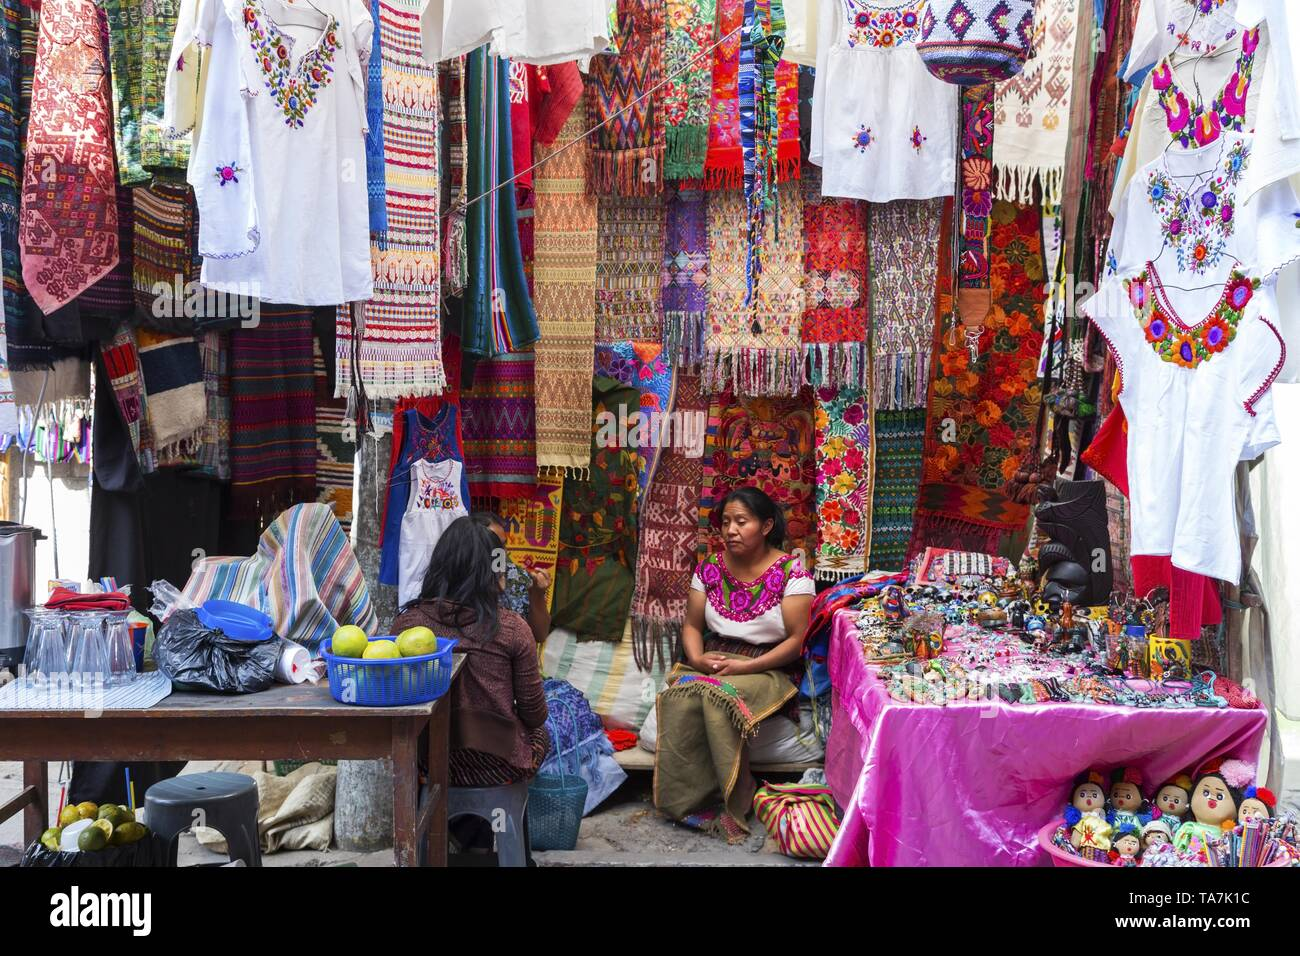 Ethnic People Sitting and Selling Traditional Textile, Carpets and Clothing on a Thursday Market Day in City of Chichicastenango or Chichi Guatemala Stock Photo